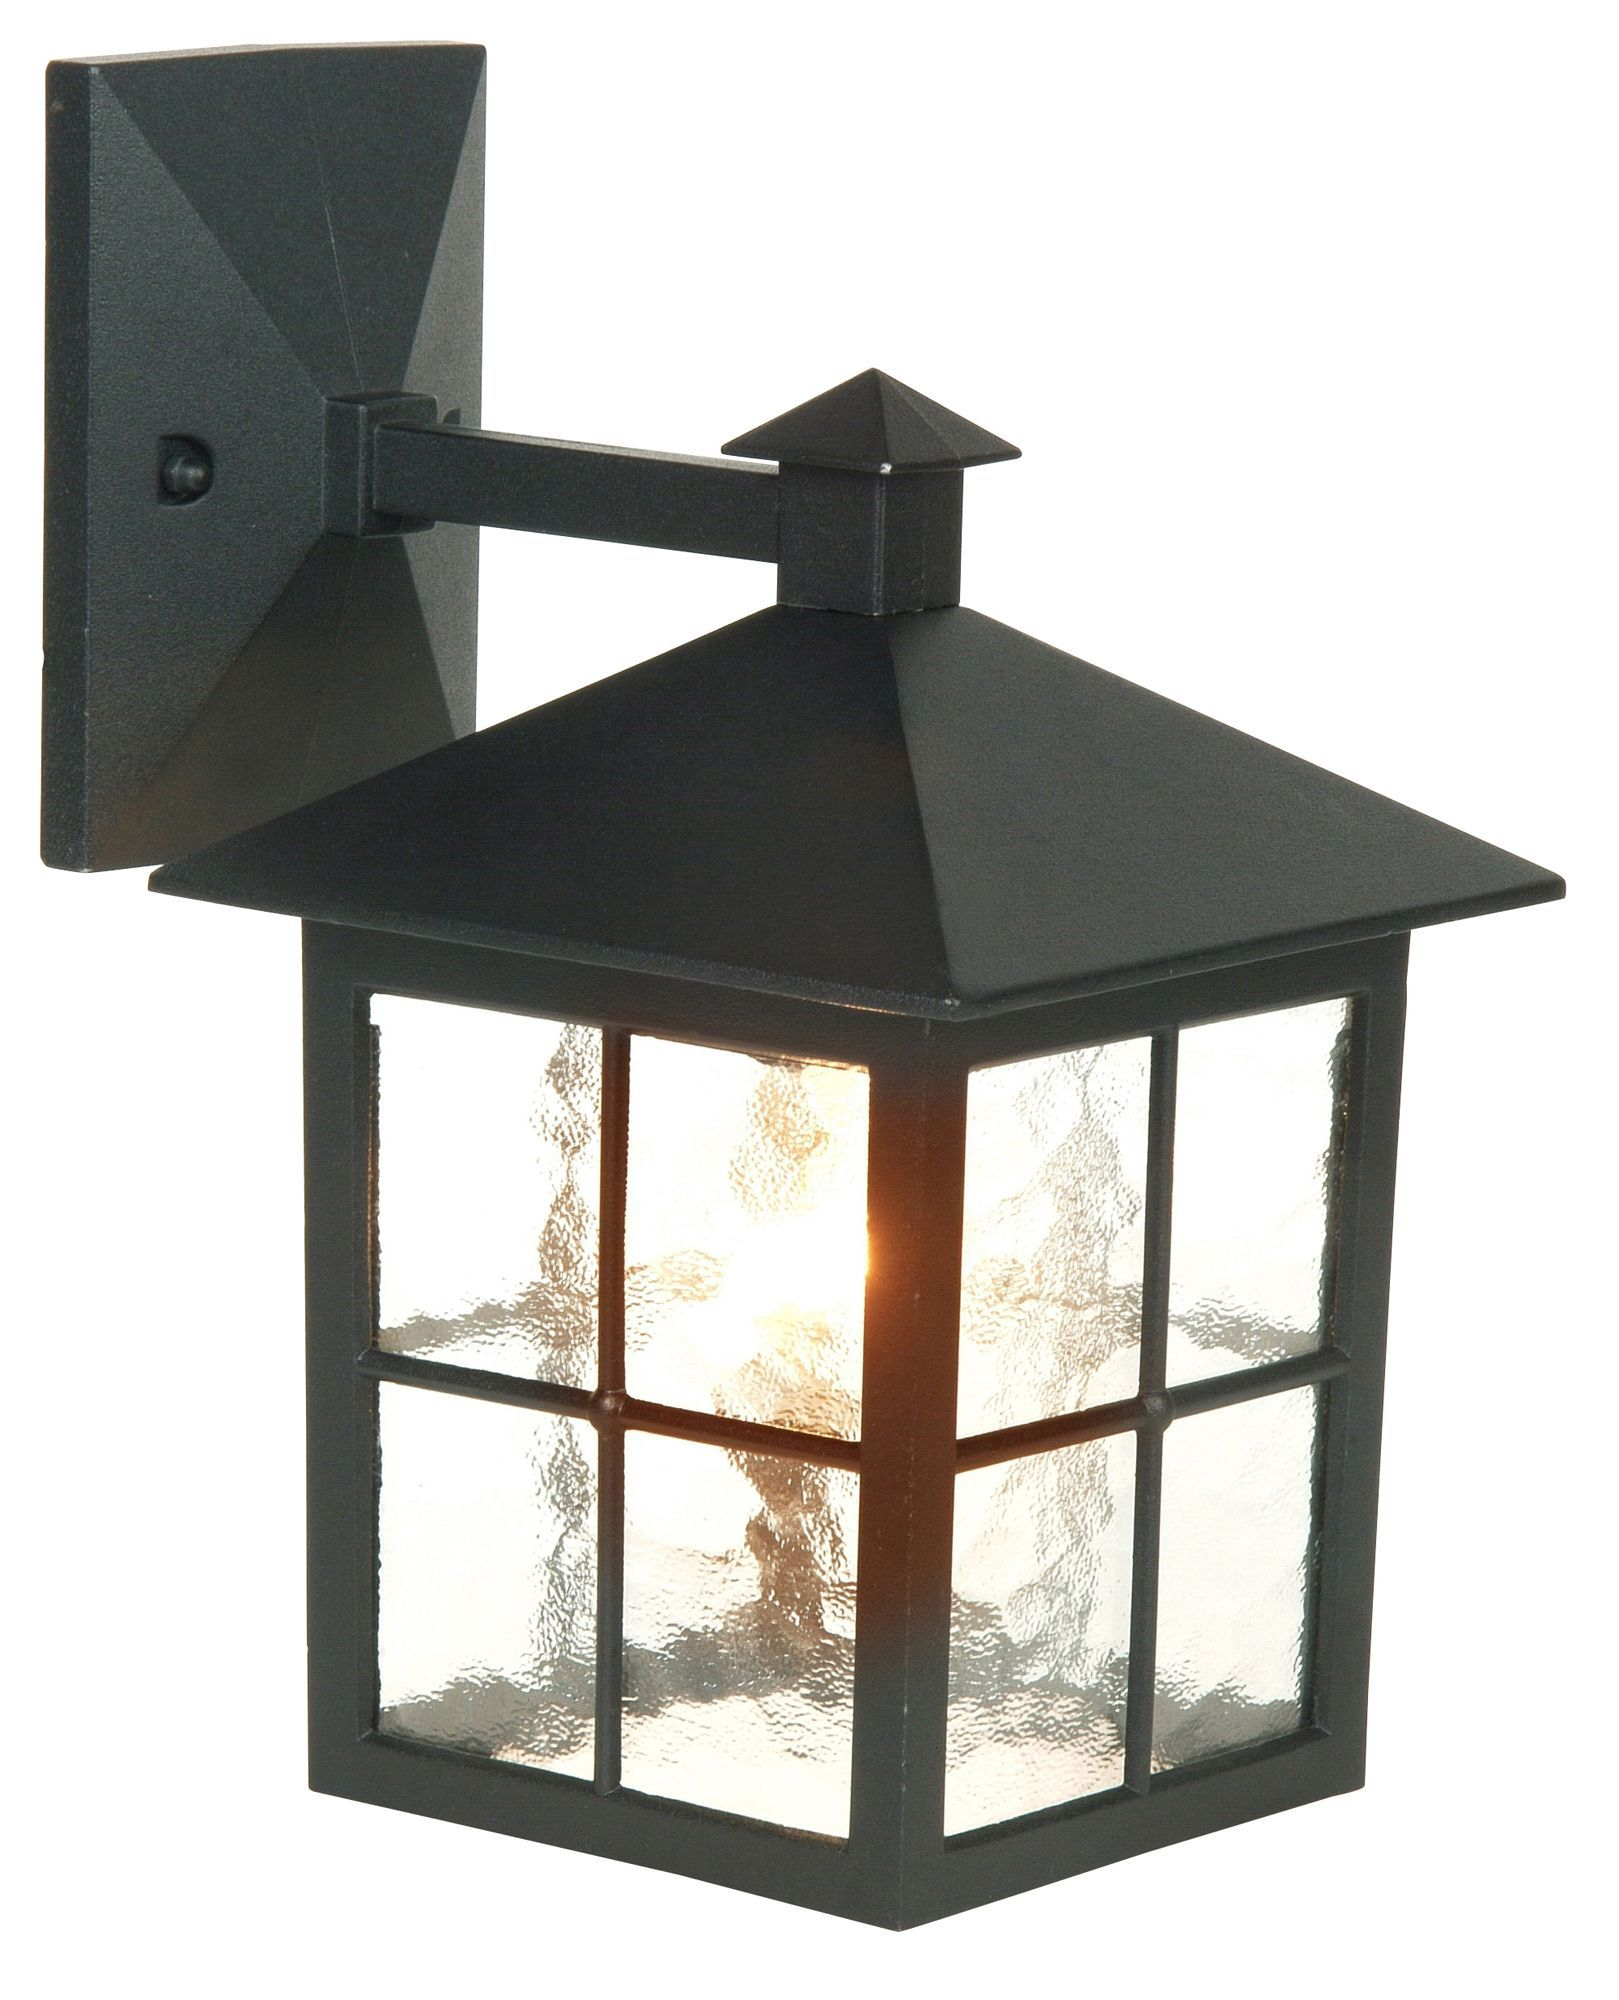 Maine black mains powered external wall lantern departments maine black mains powered external wall lantern departments diy at bq aloadofball Choice Image